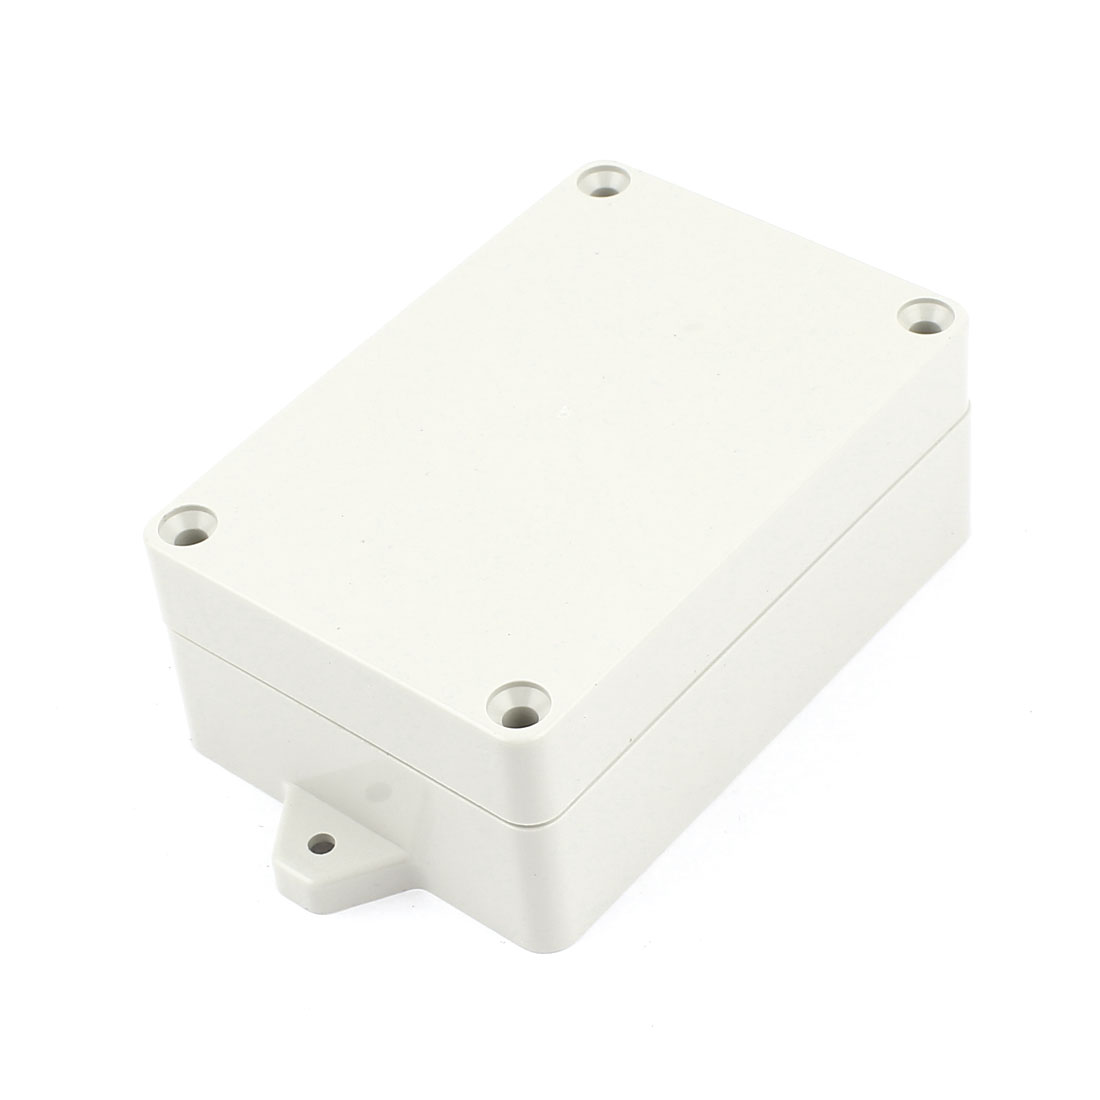 100mm x 68mm x 40mm Water Resistant Plastic Sealed DIY Joint Electrical Junction Box